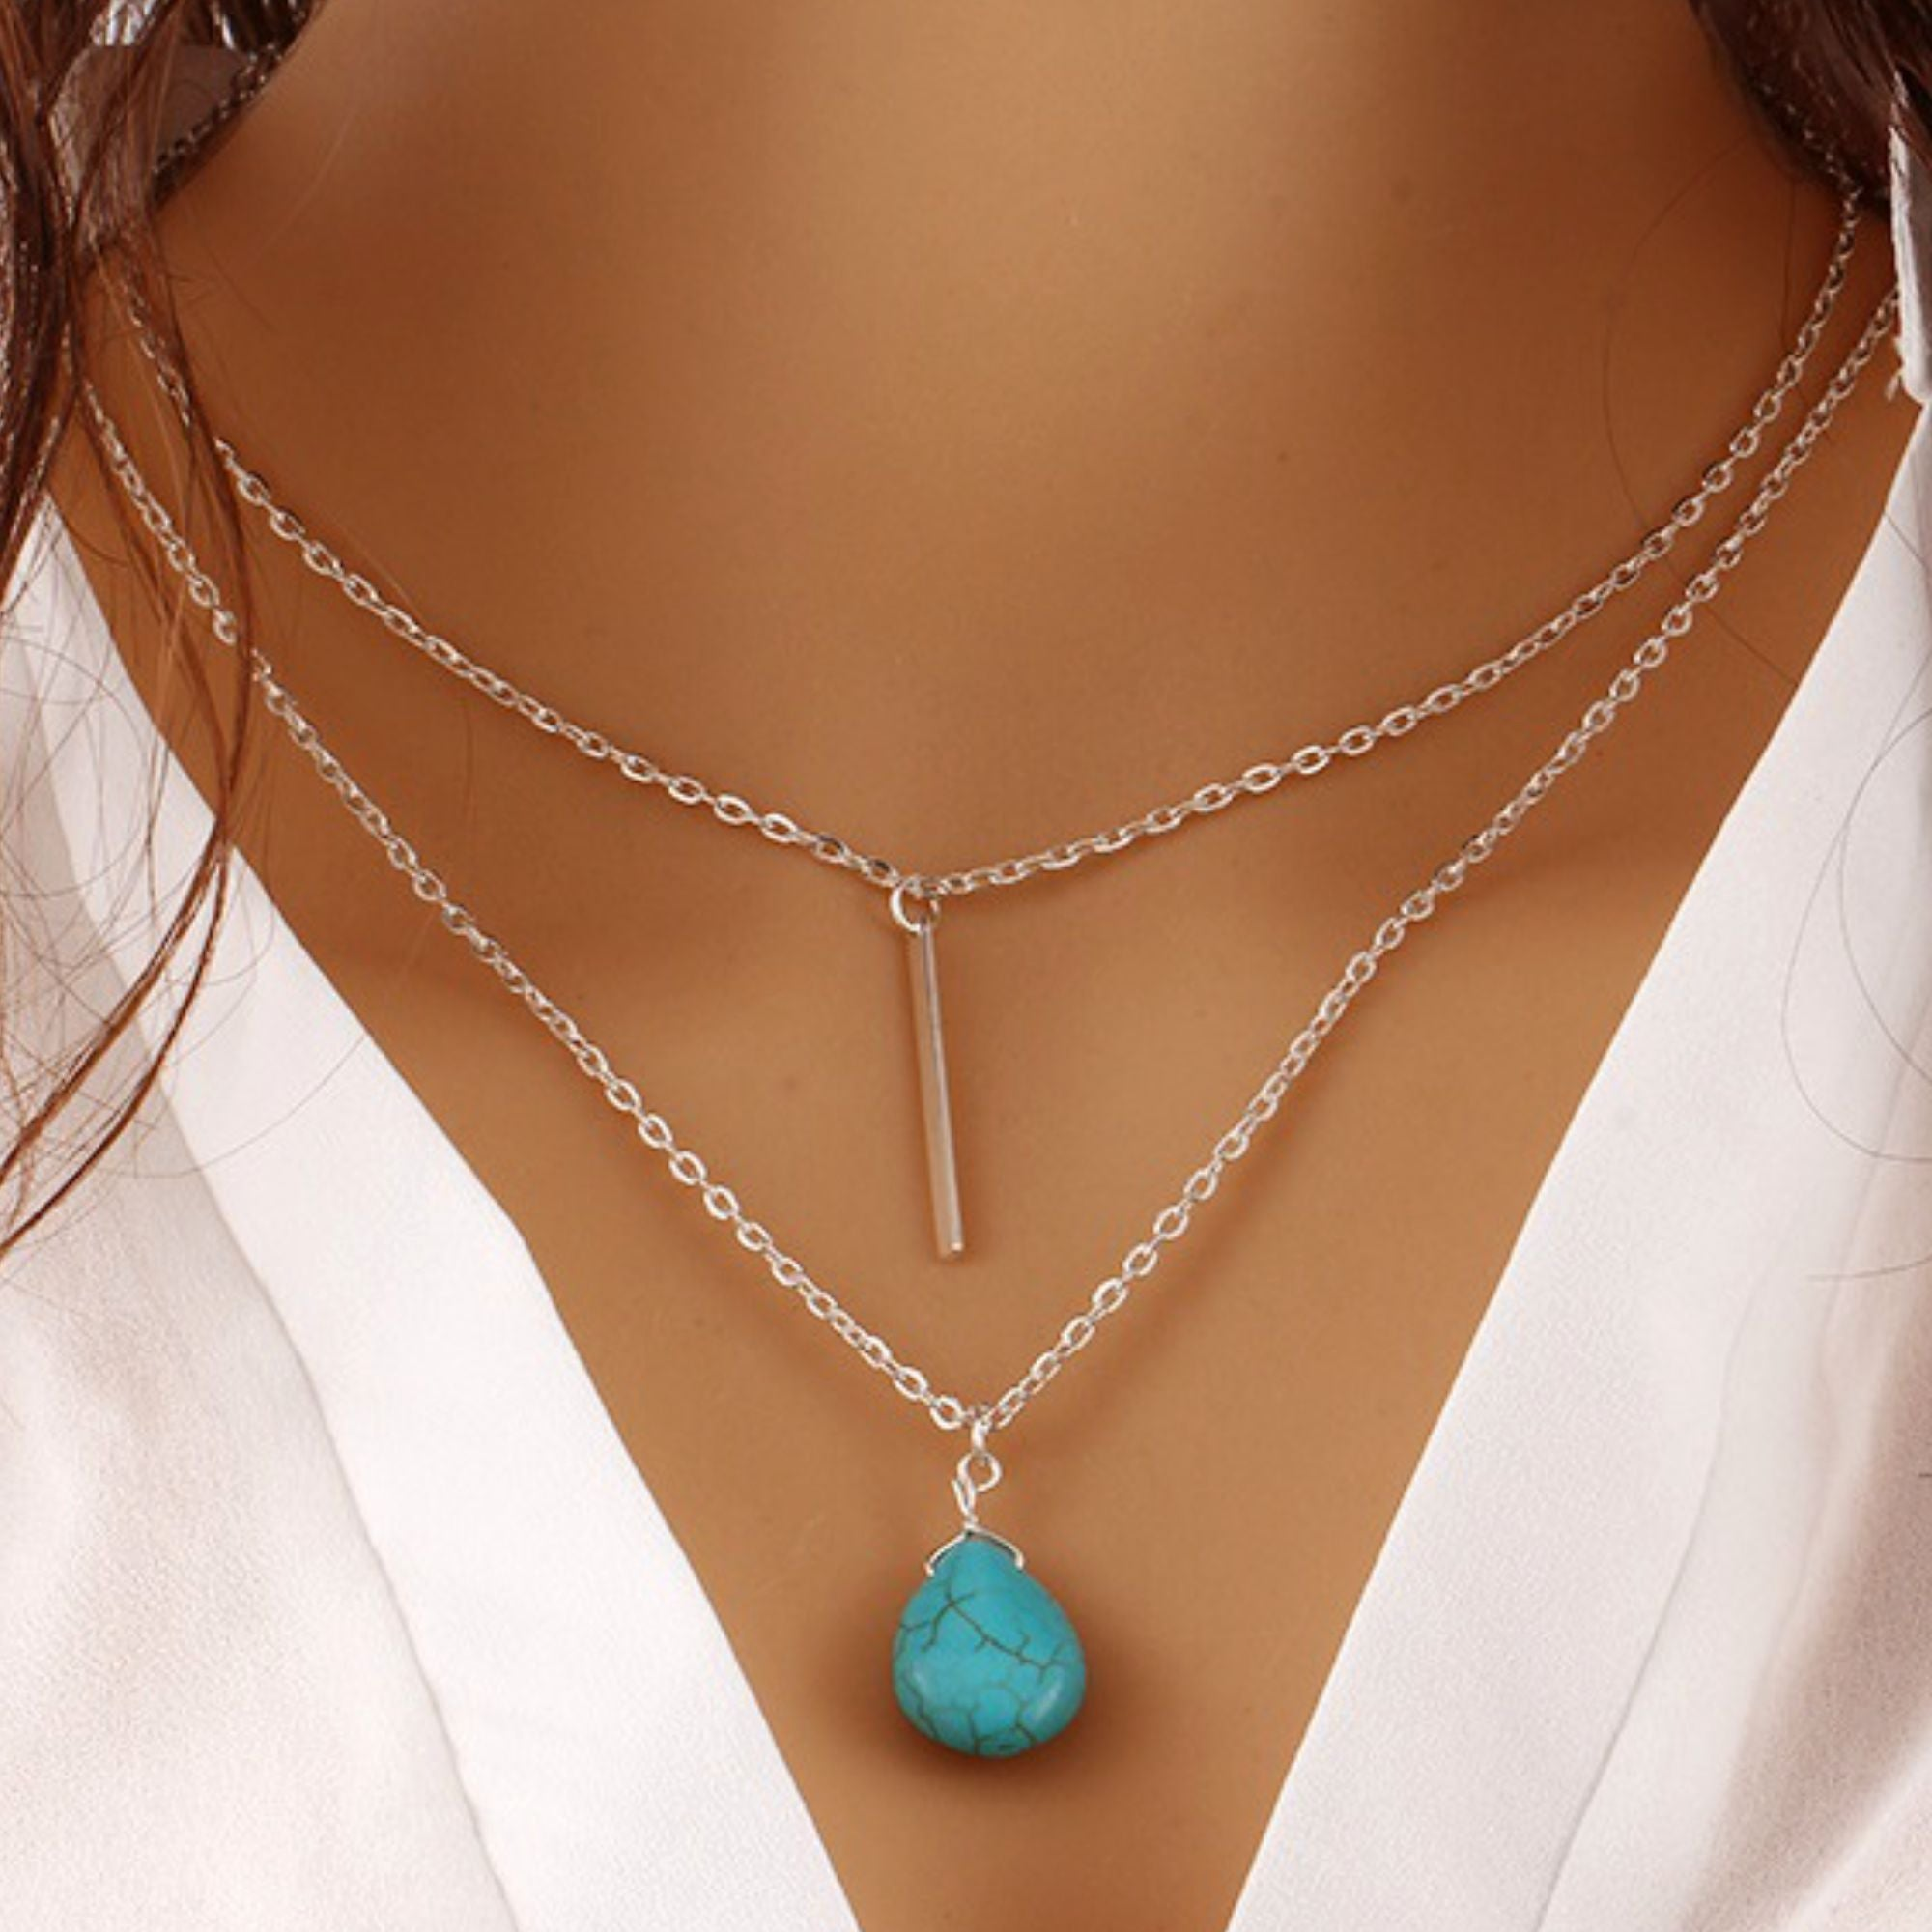 90c112c64992 Wholesale Multi layer Silver Bar Turquoise Water Drop Fashion Necklace -  Ablaze Wholesale Jewelry